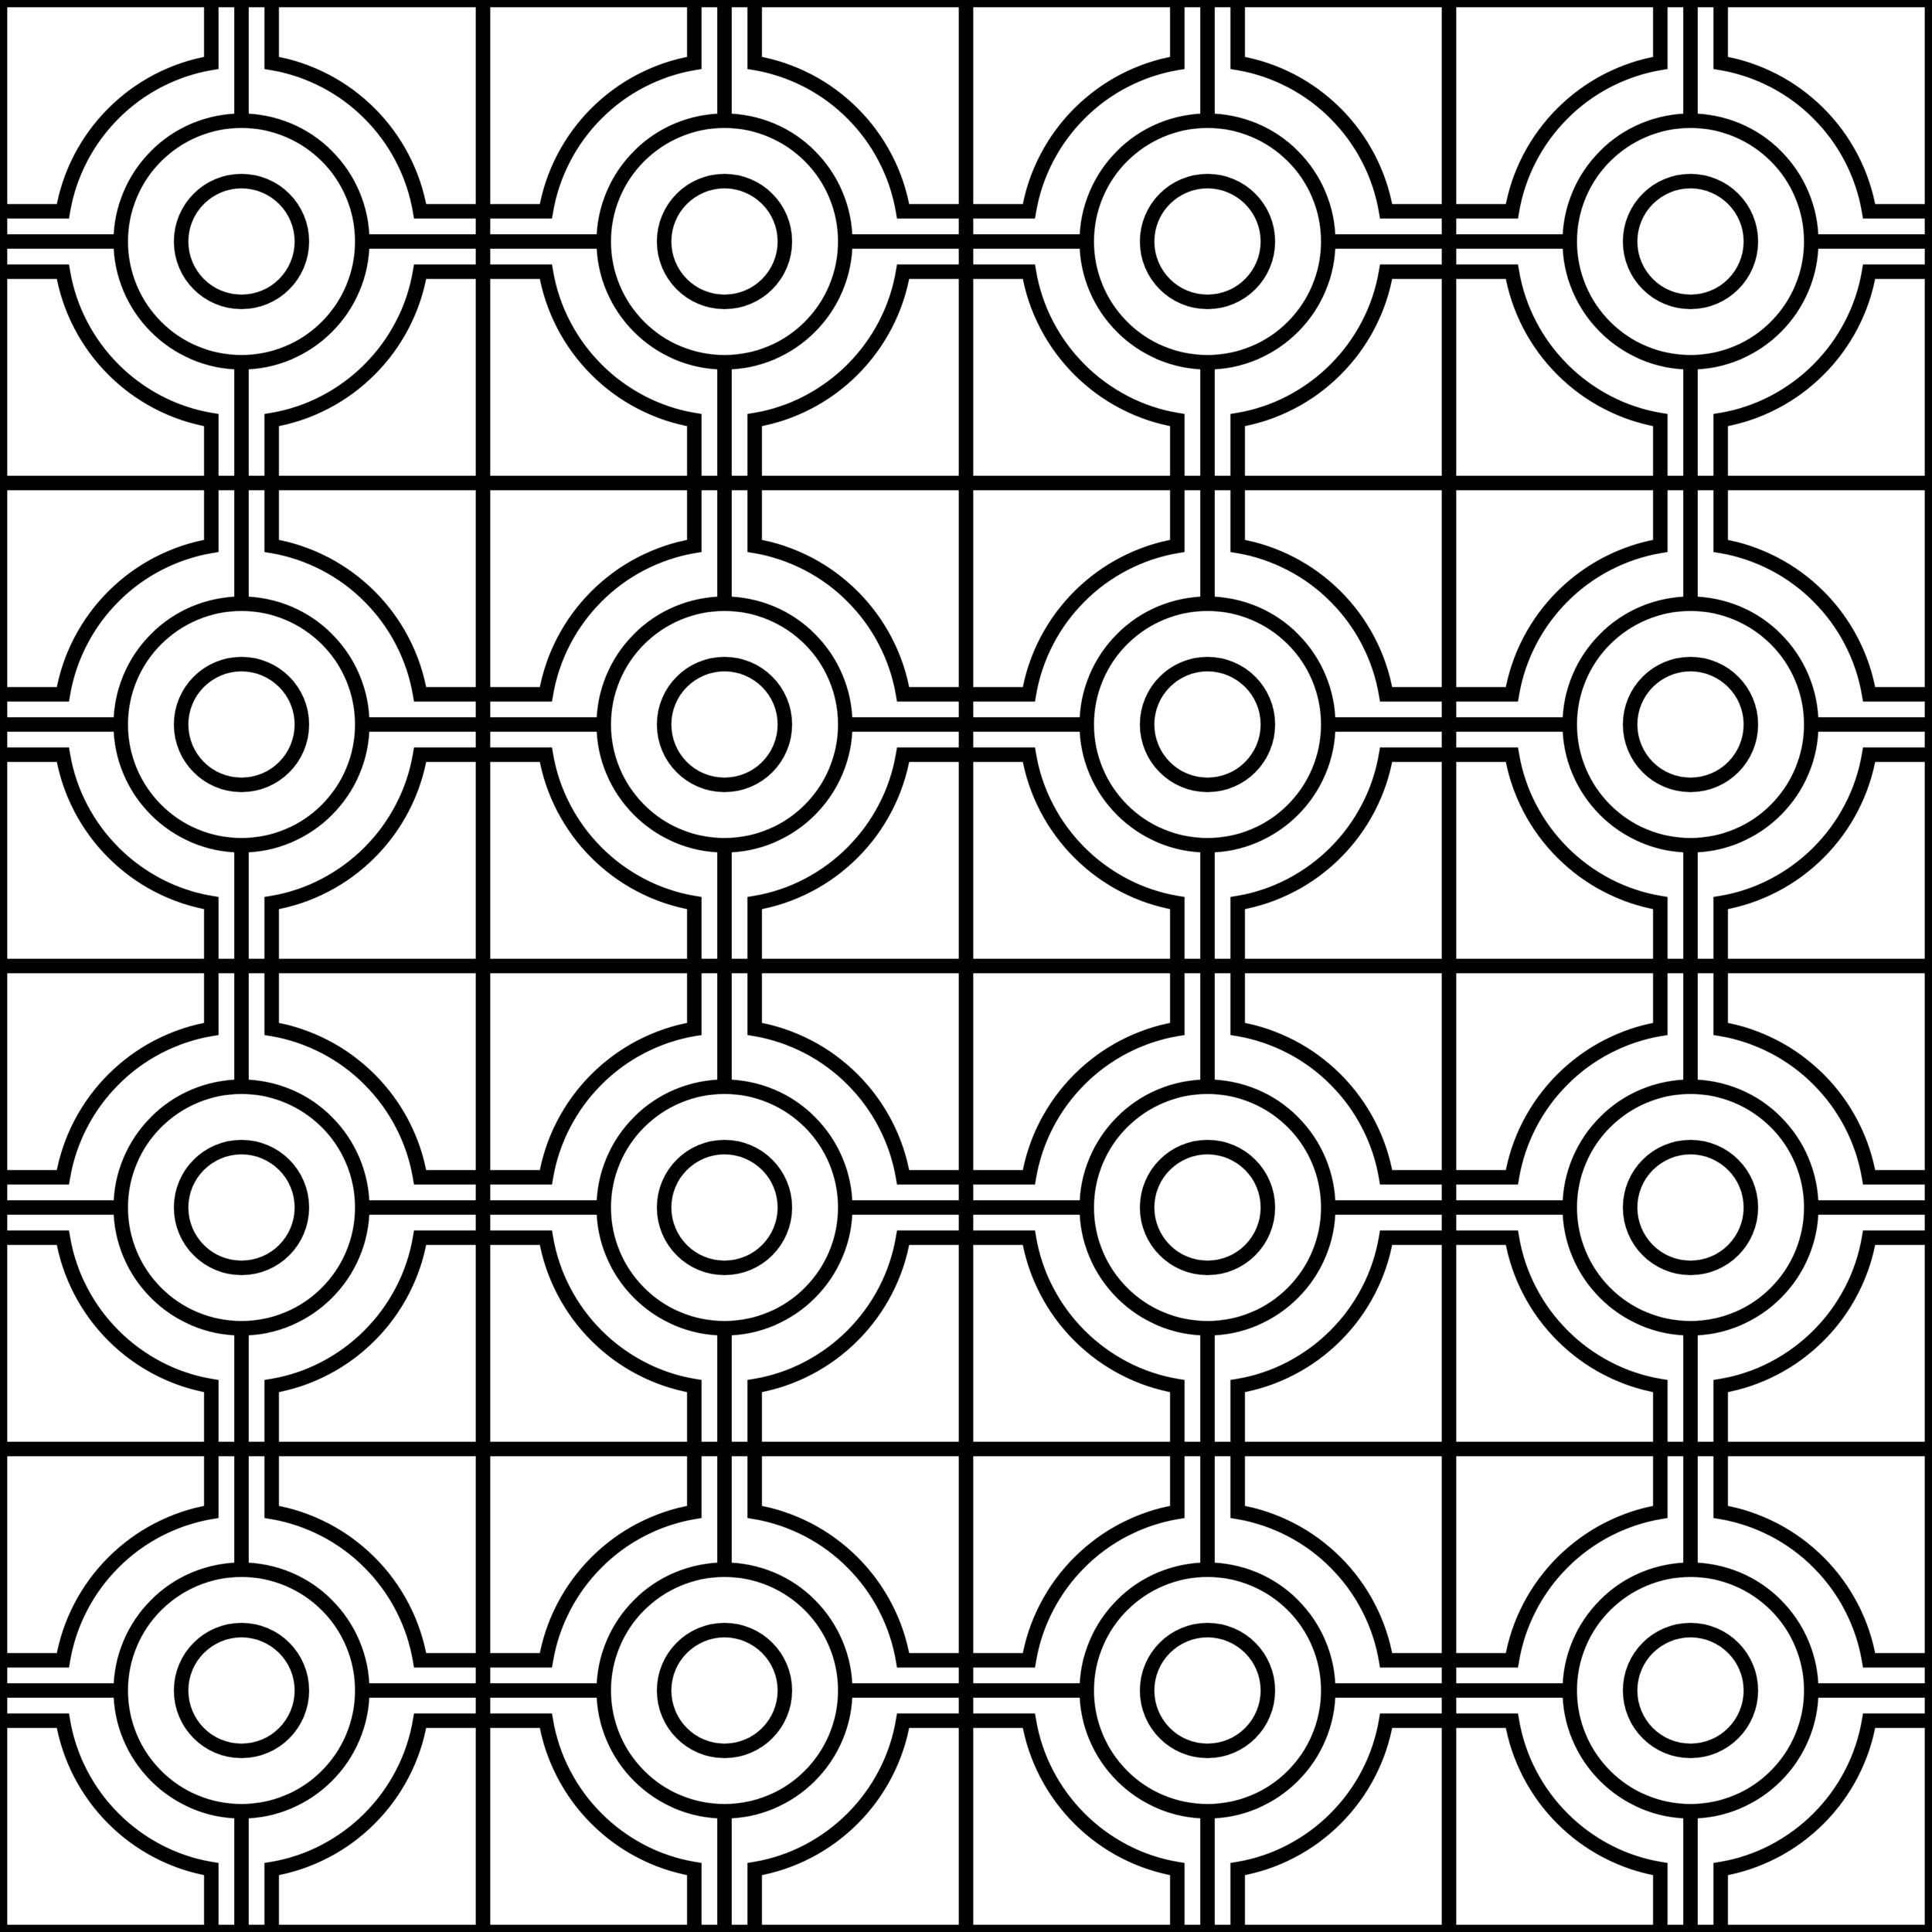 BYC_TILE_GEO_01.png